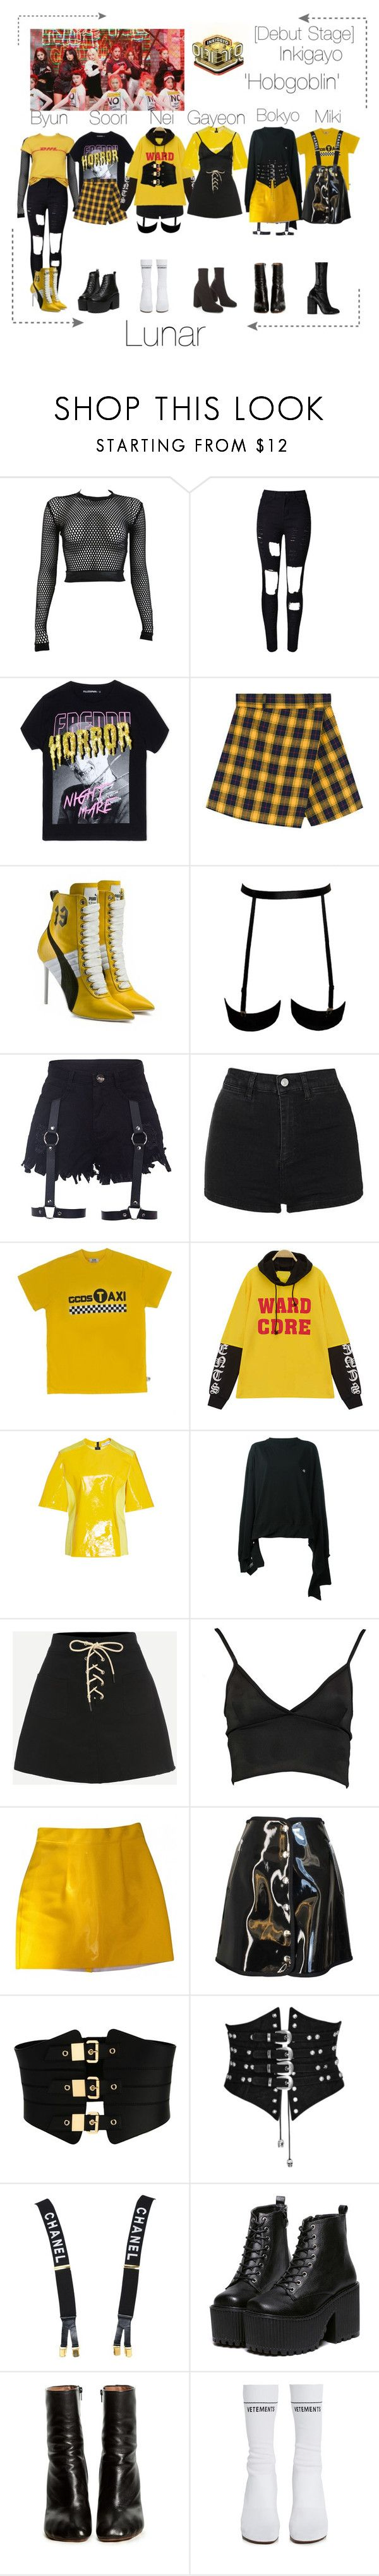 Lunar (루나) [Debut Stage] Hobgoblin Inkigayo (1st Win) by lunar-official ❤ liked on Polyvore featuring PAM, WithChic, Filles à papa, Puma, Topshop, TAXI, Sonia Rykiel, Vetements, Boohoo and American Apparel